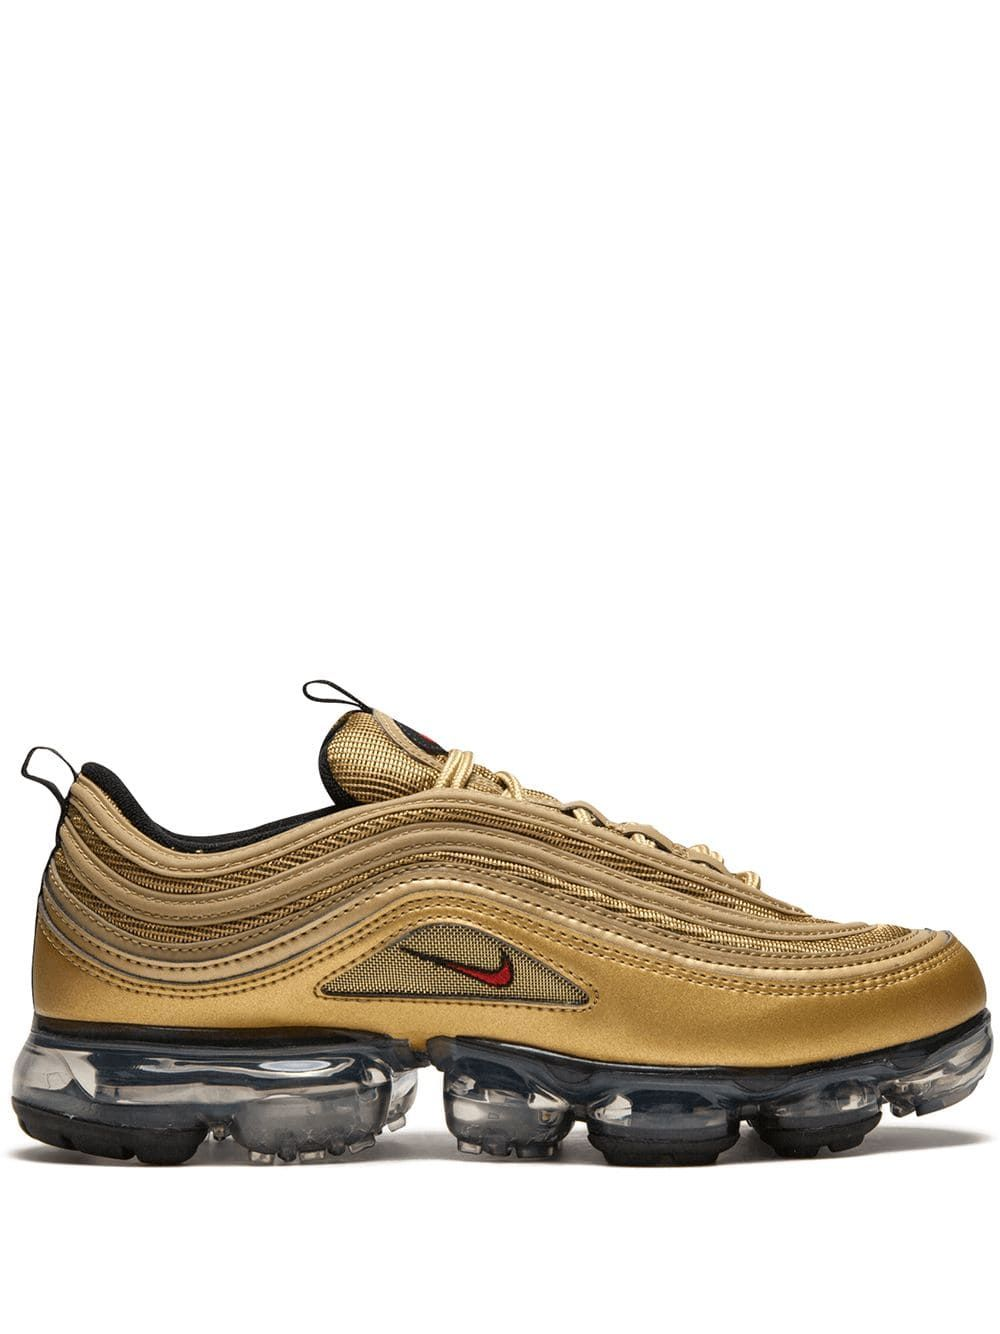 new product 3910b 93245 Nike Air Vapormax '97 - Gold in 2019 | Products | Nike air ...